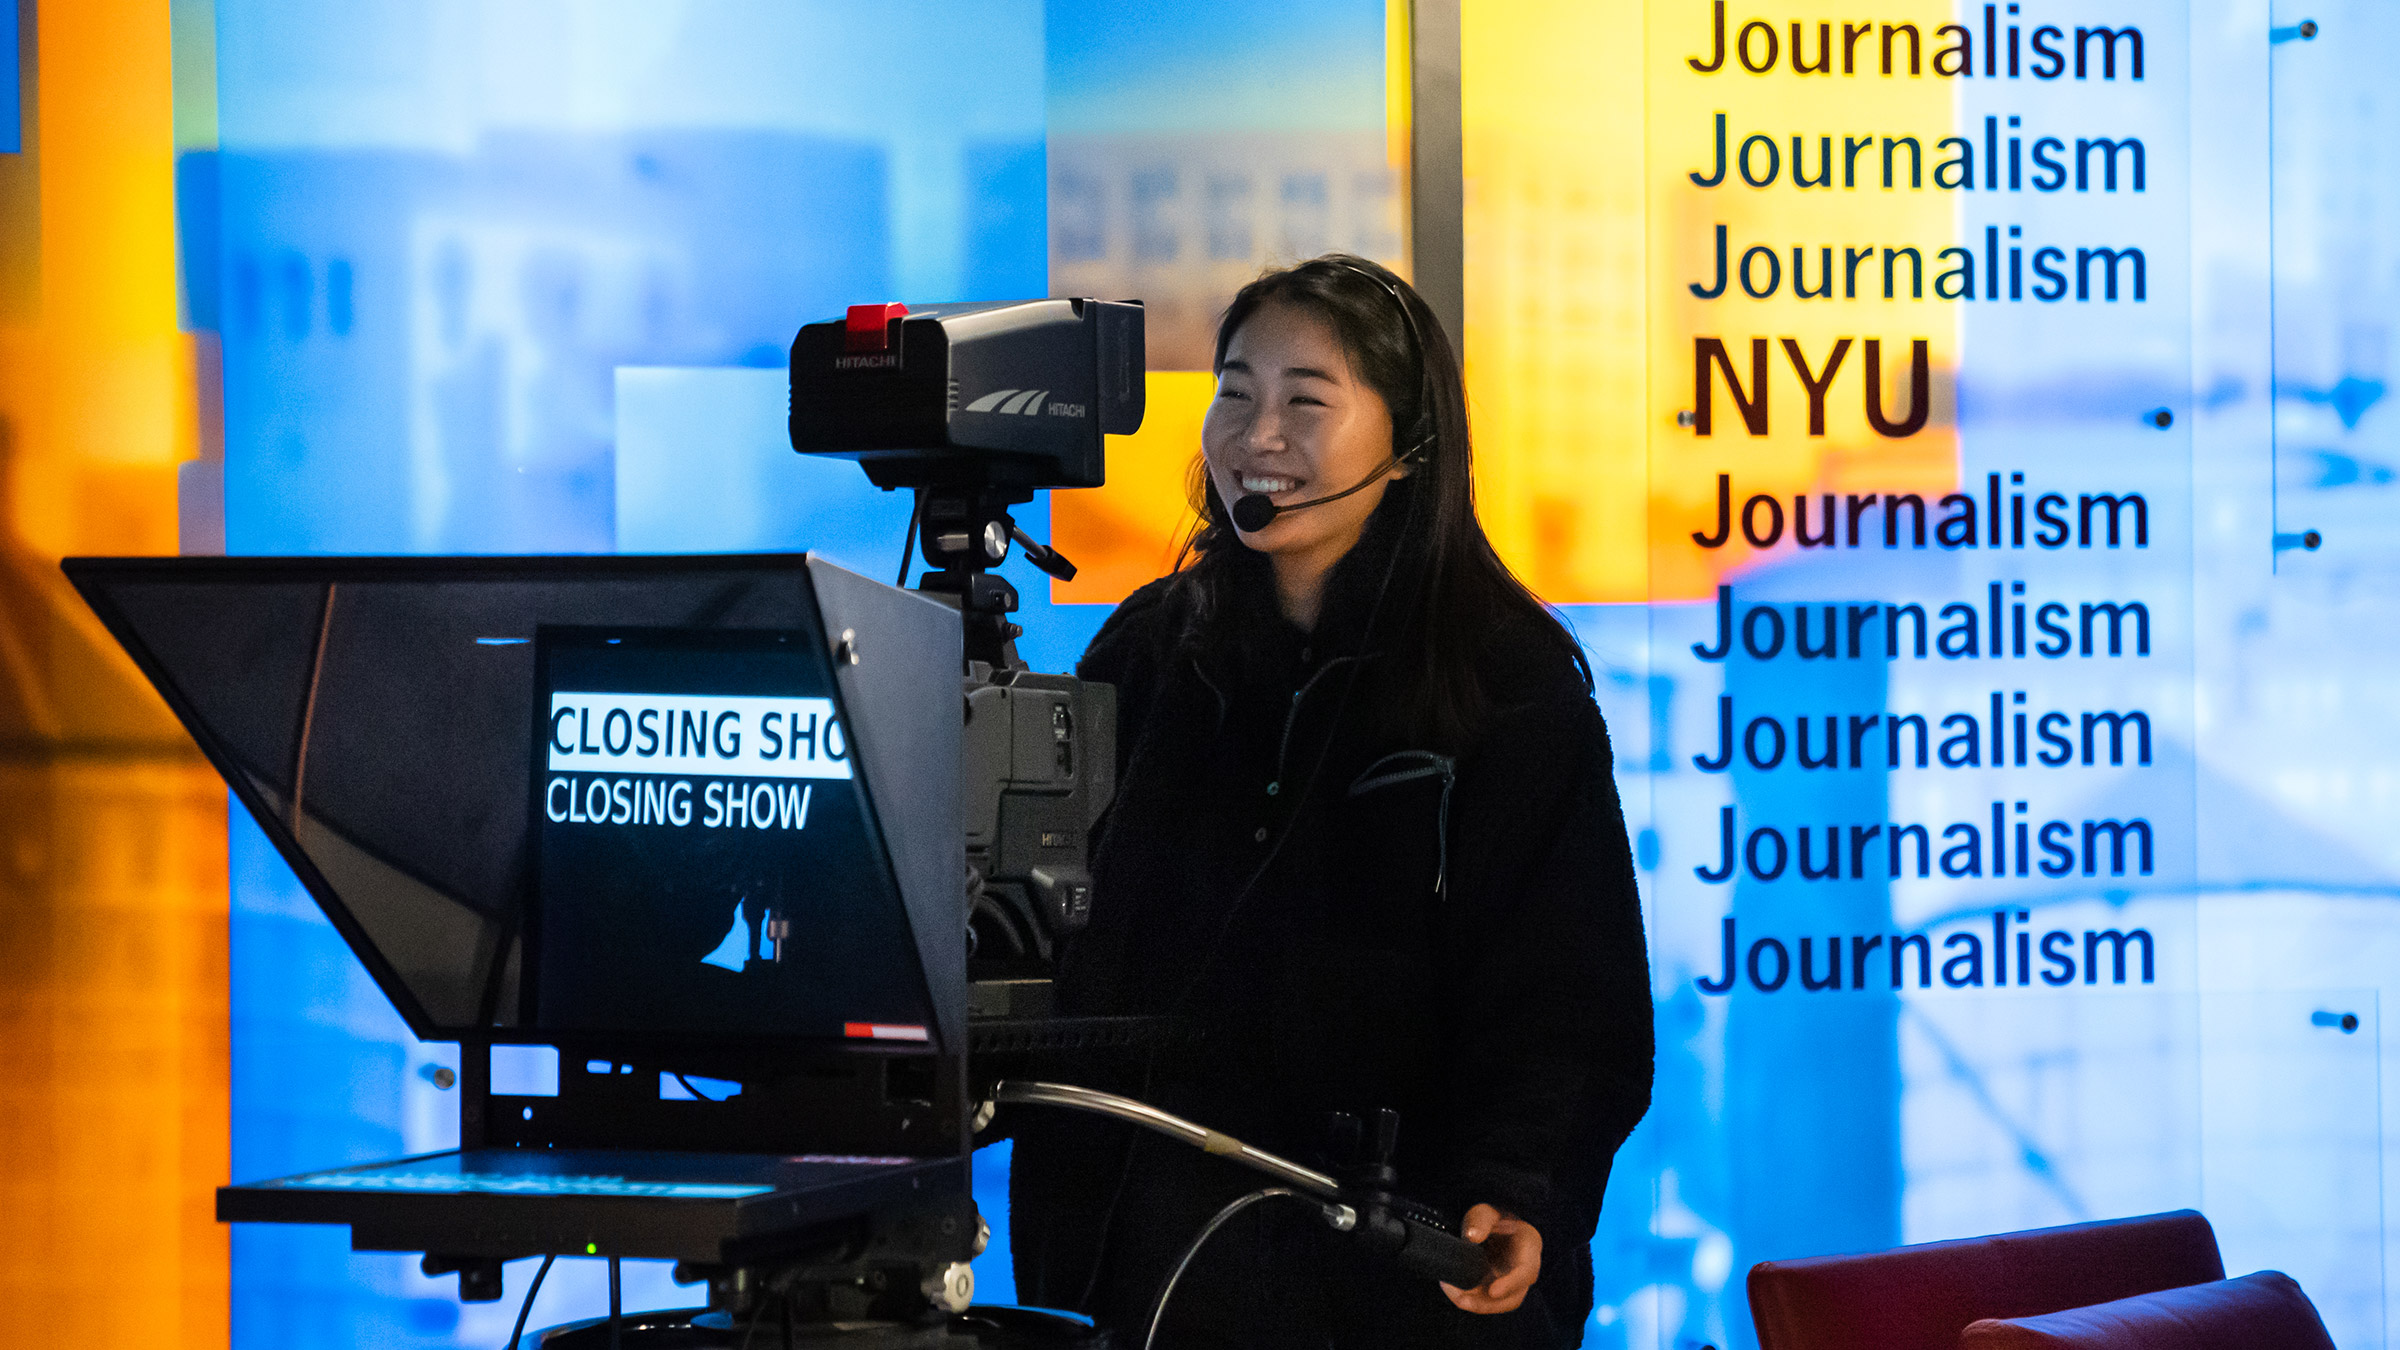 RTN/RNY student Bessie Liu at work in the TV Studio